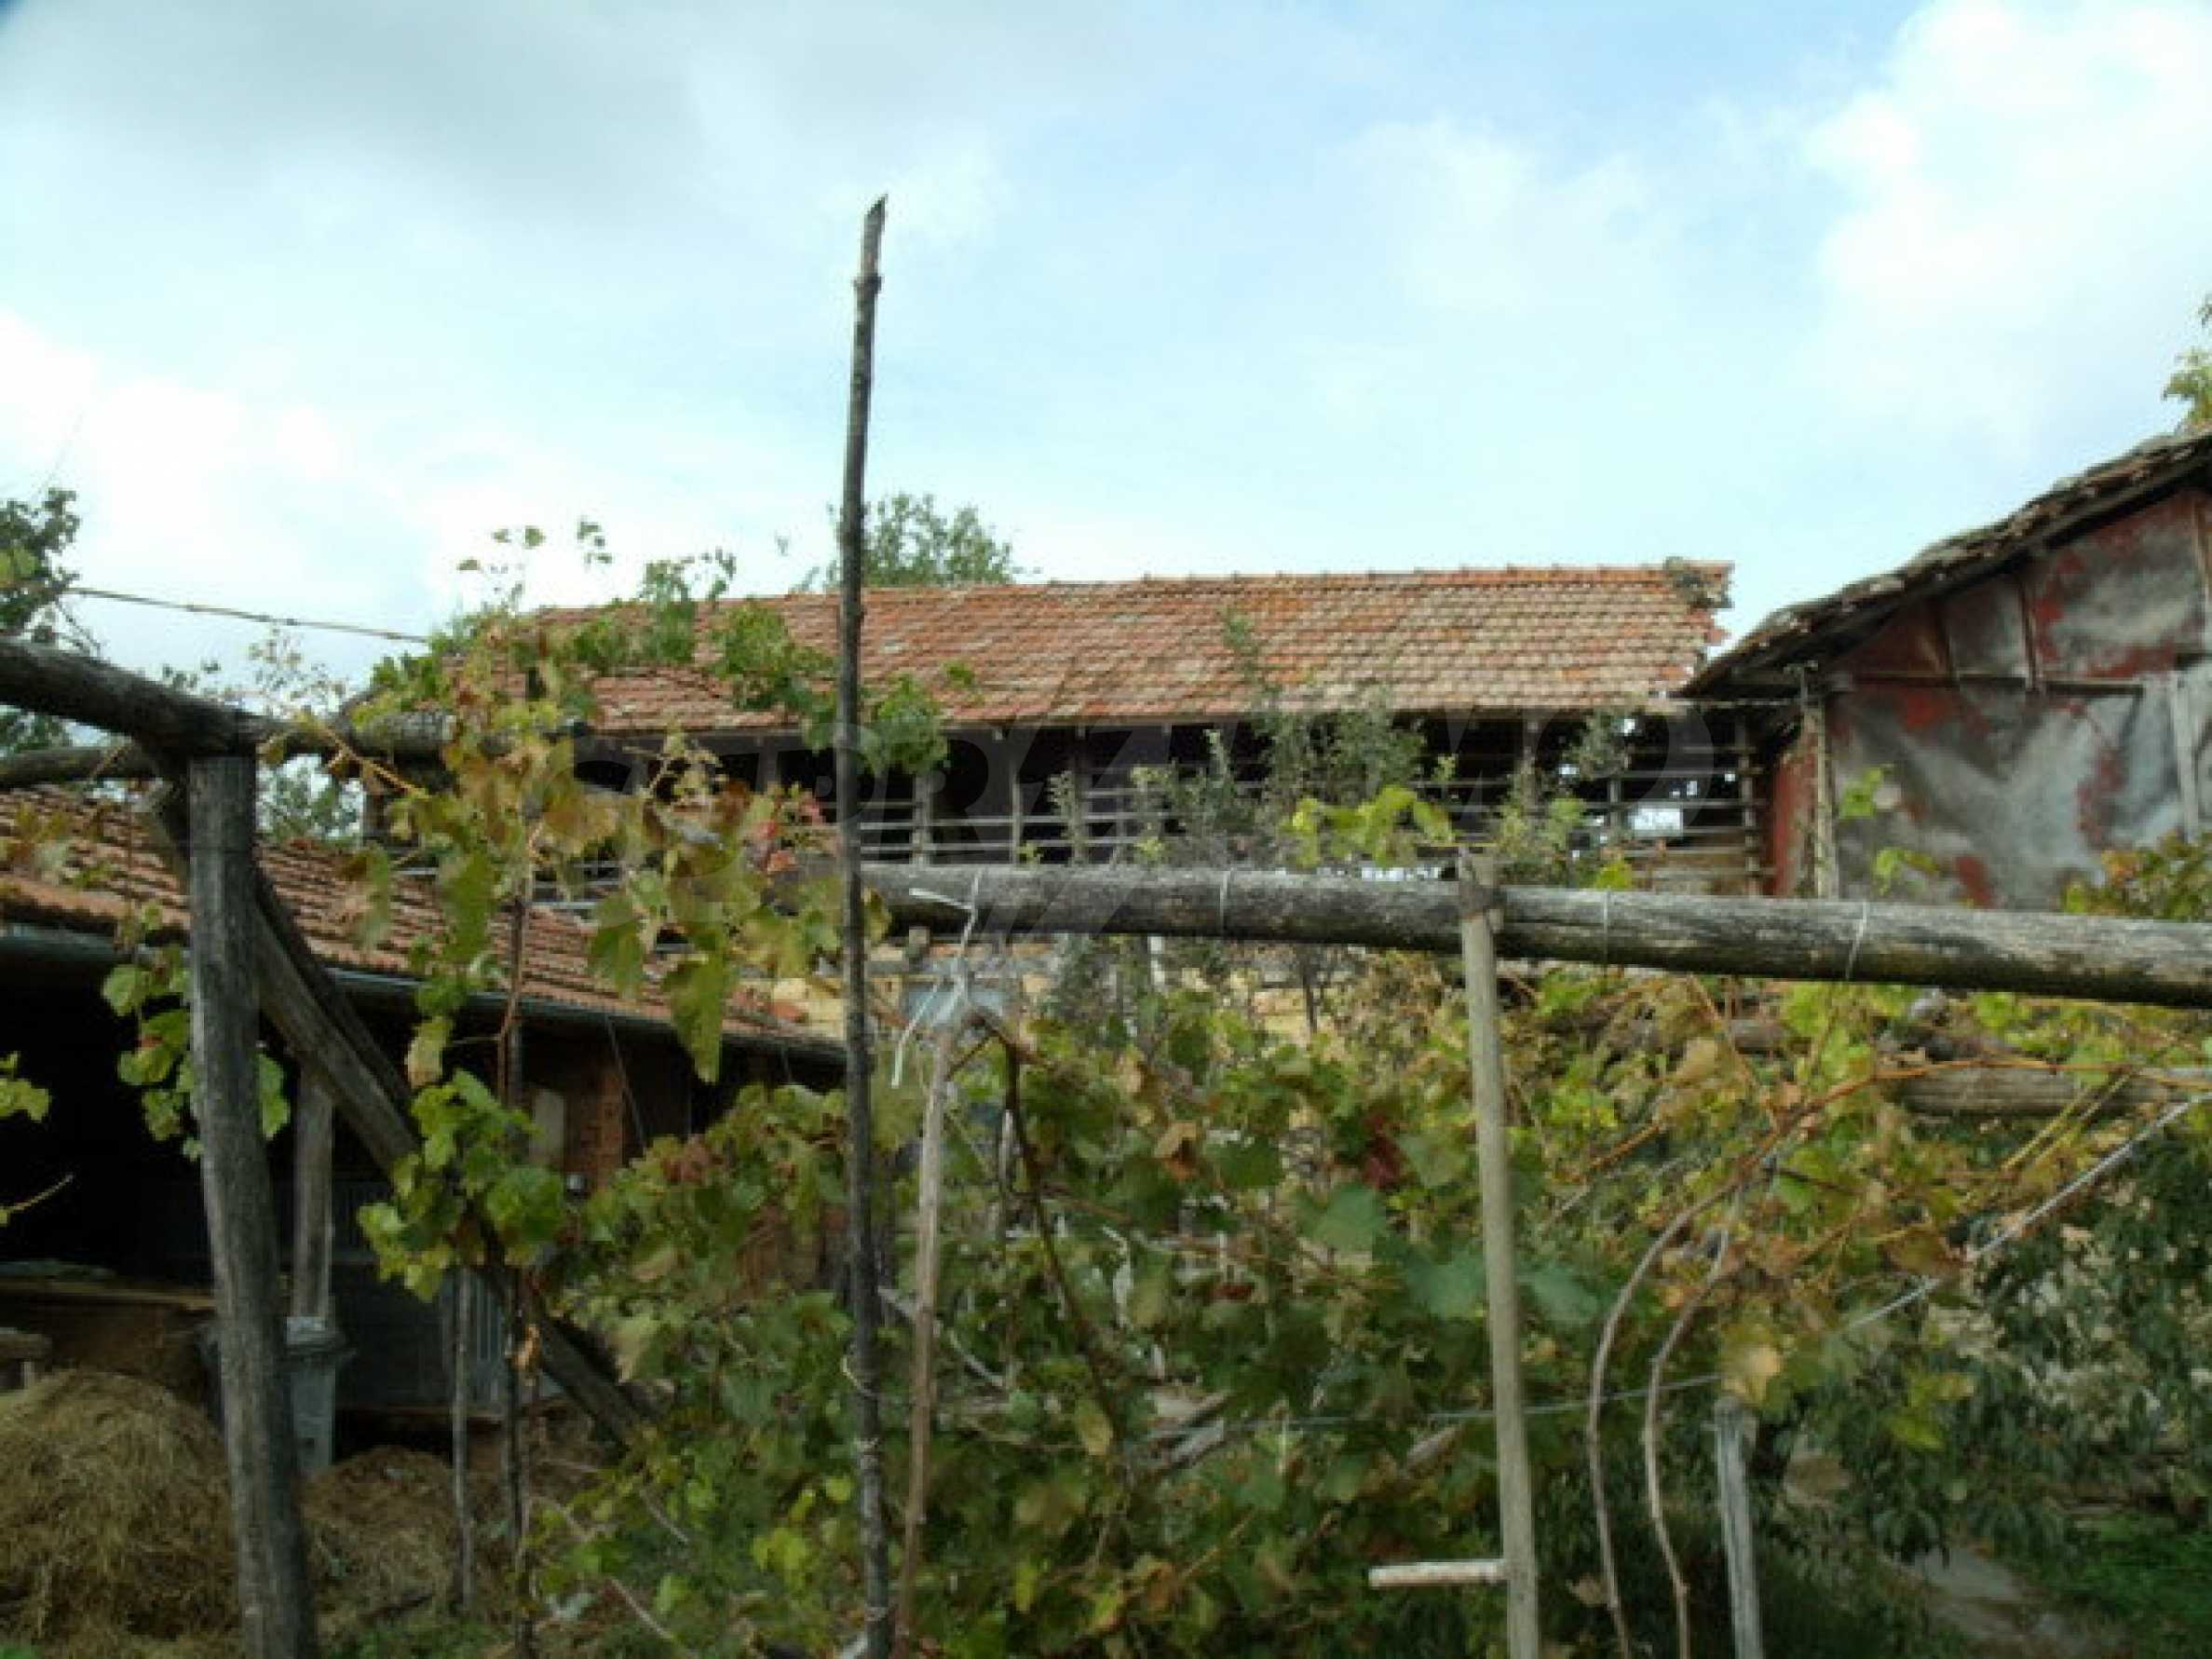 House in a small town, 15 km. from the old capital of Veliko Tarnovo 29